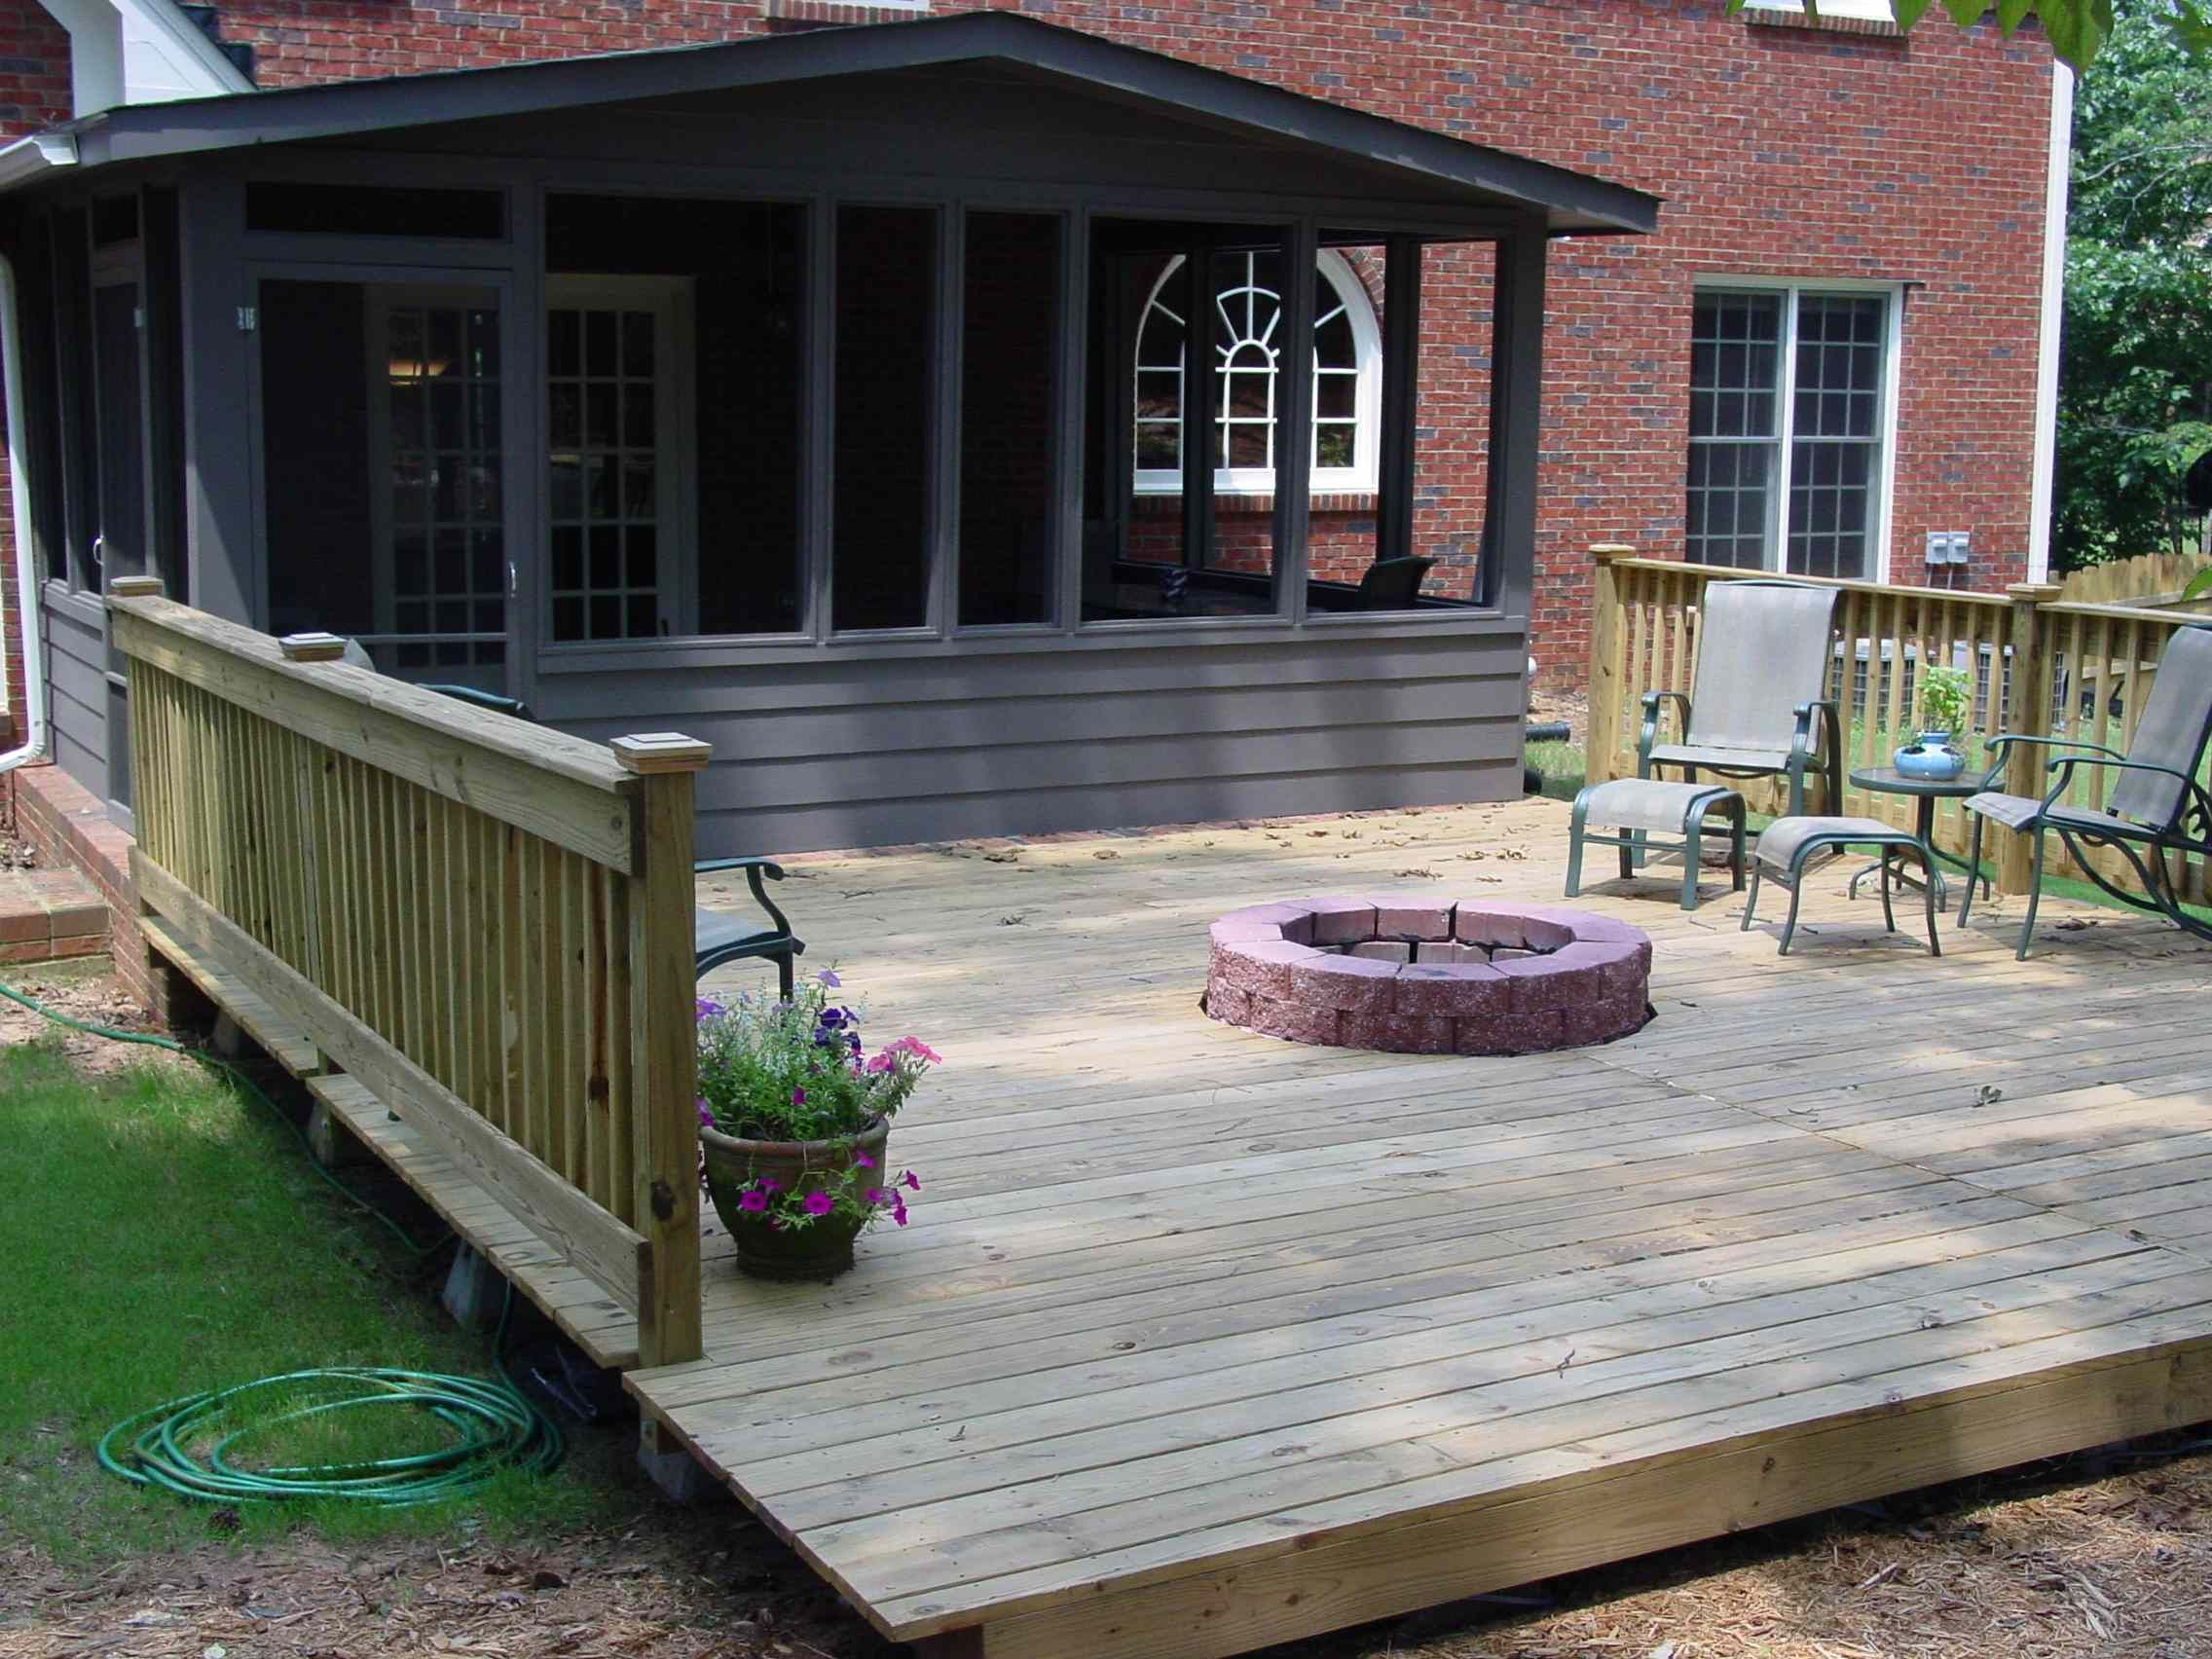 Deck With Fire Pit Quality Home Remodeling For The Home Deck intended for sizing 2272 X 1704